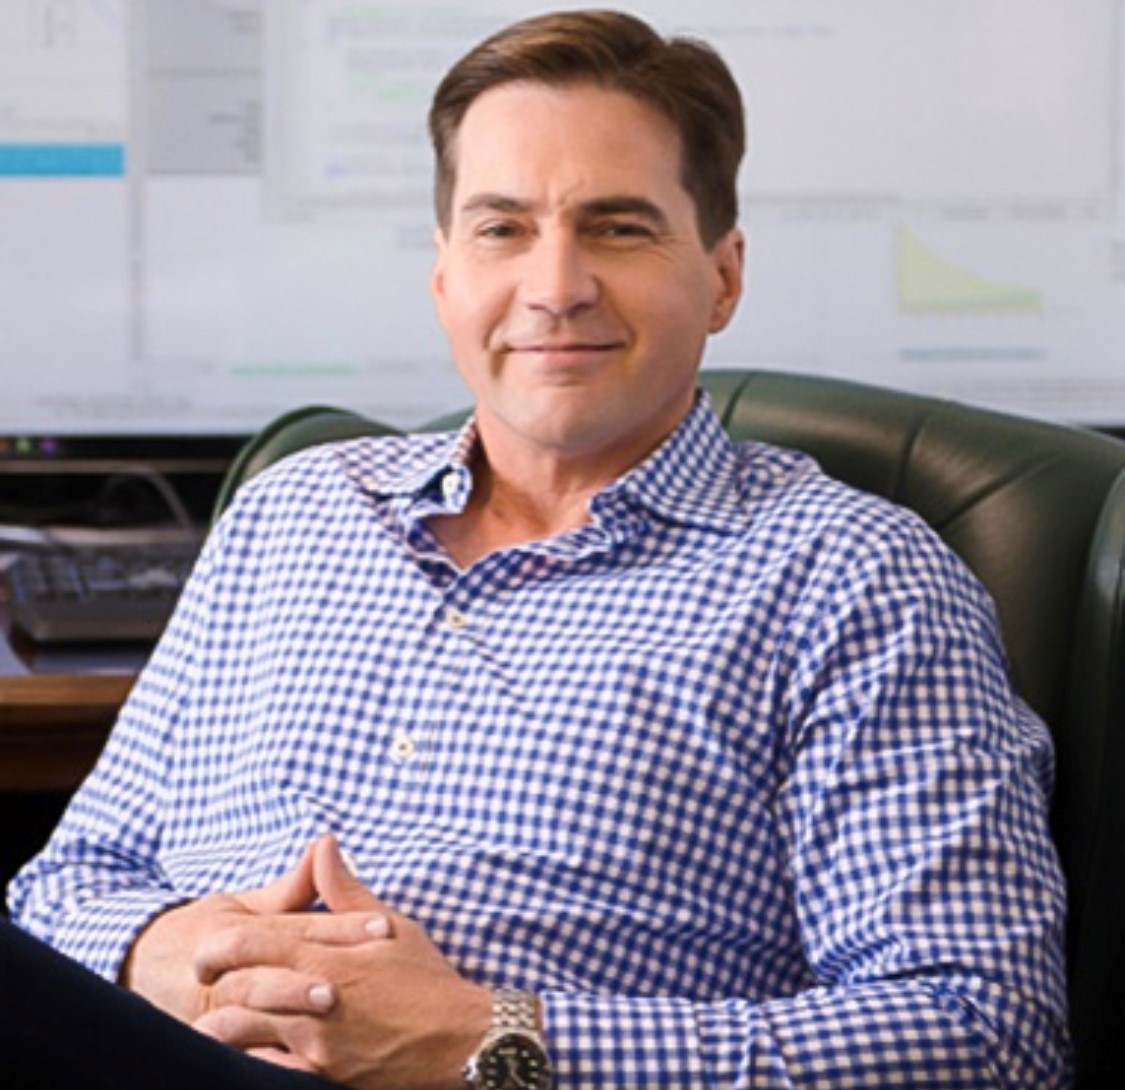 Life's Tough – but Dr. Craig Wright is TOUGHER, challenging the world with visionary ideas.